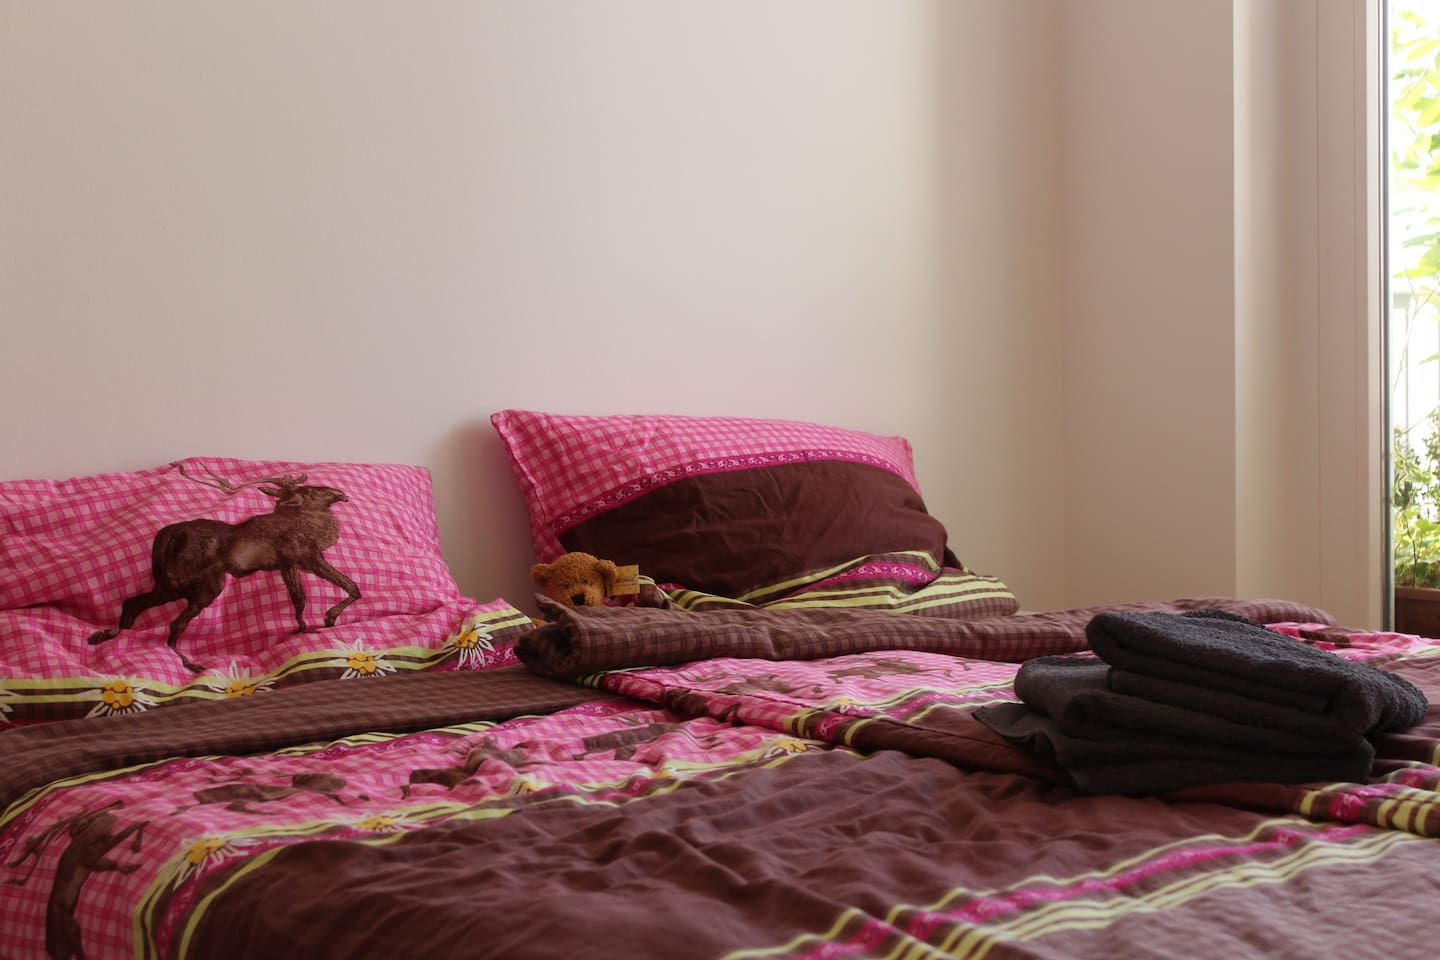 you can choose between single- and double-bed (on the picture)